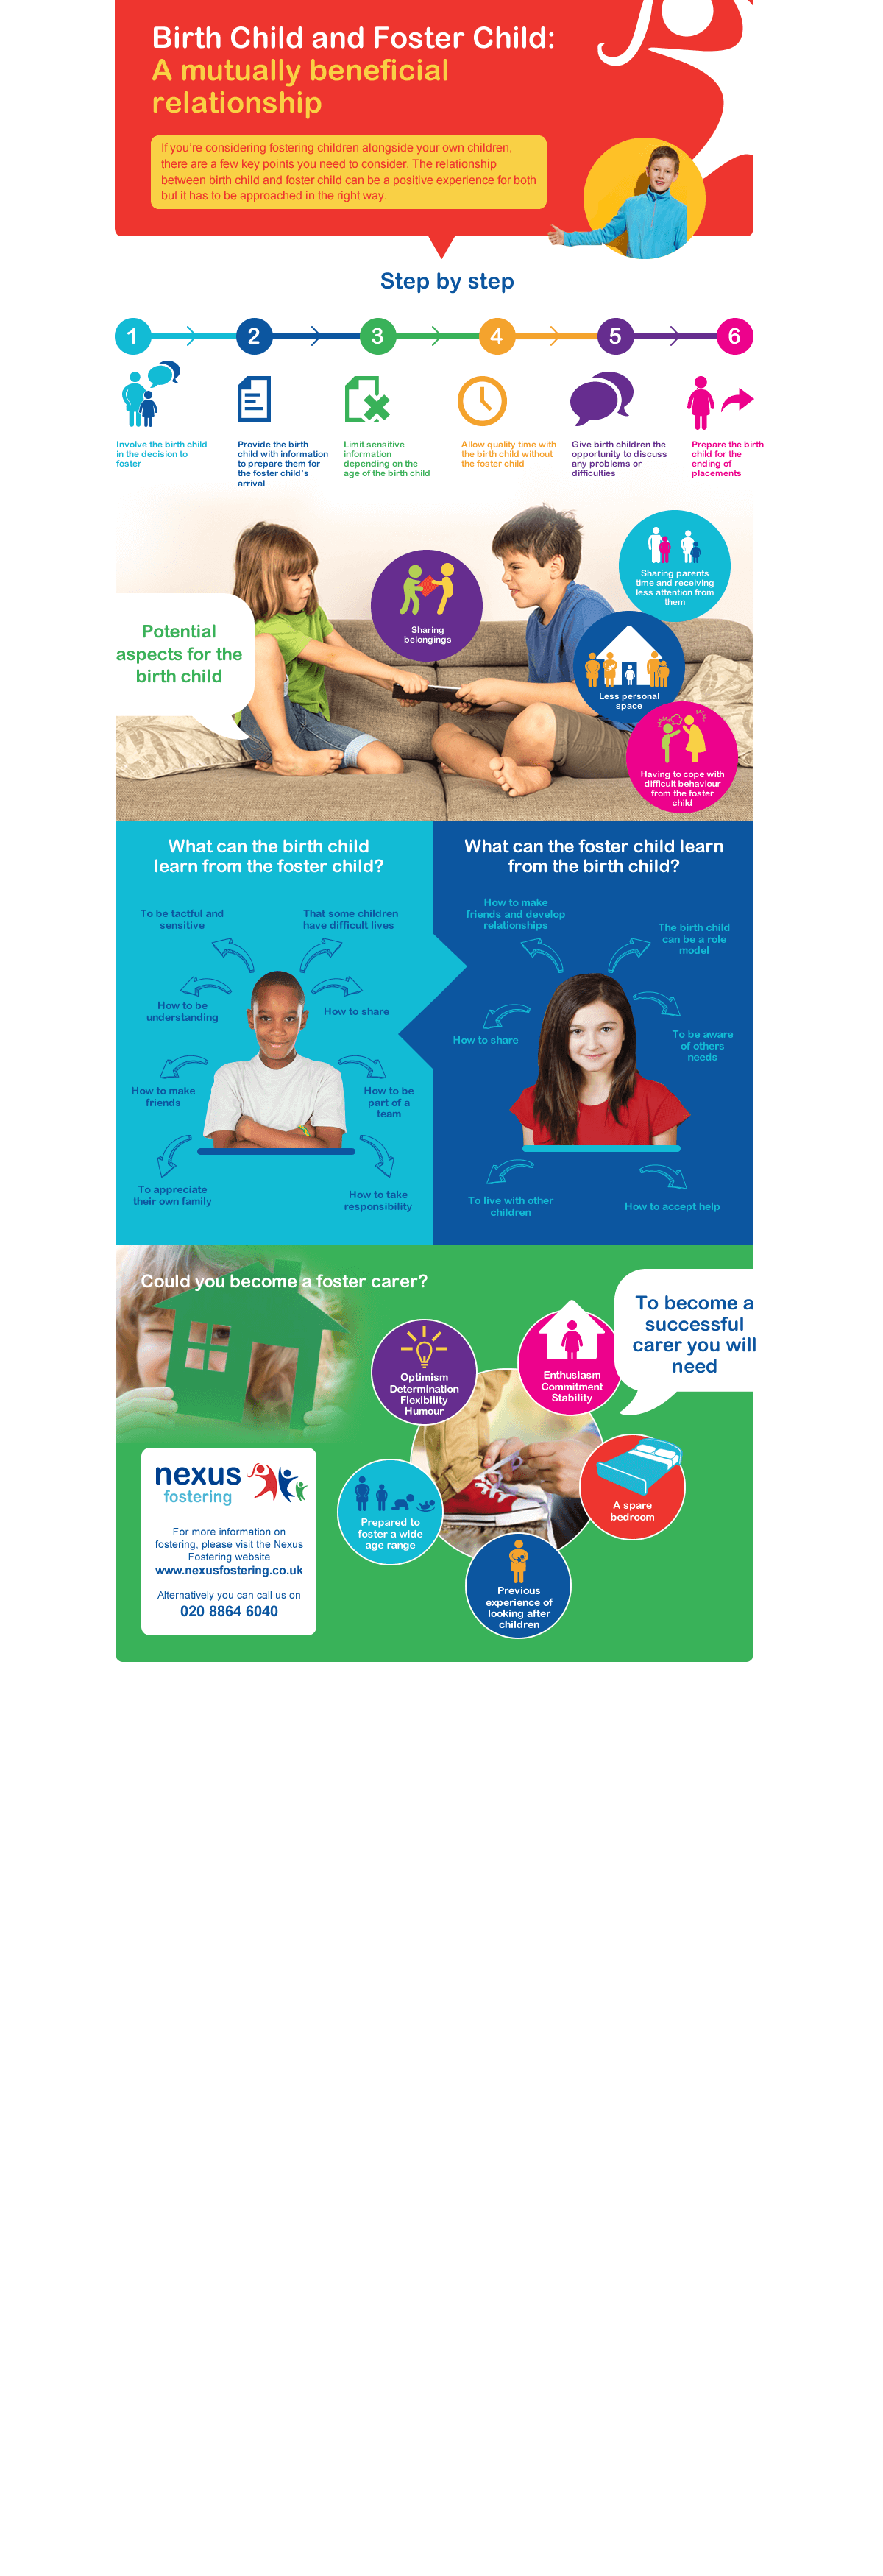 Birth Child and Foster Child Infographic